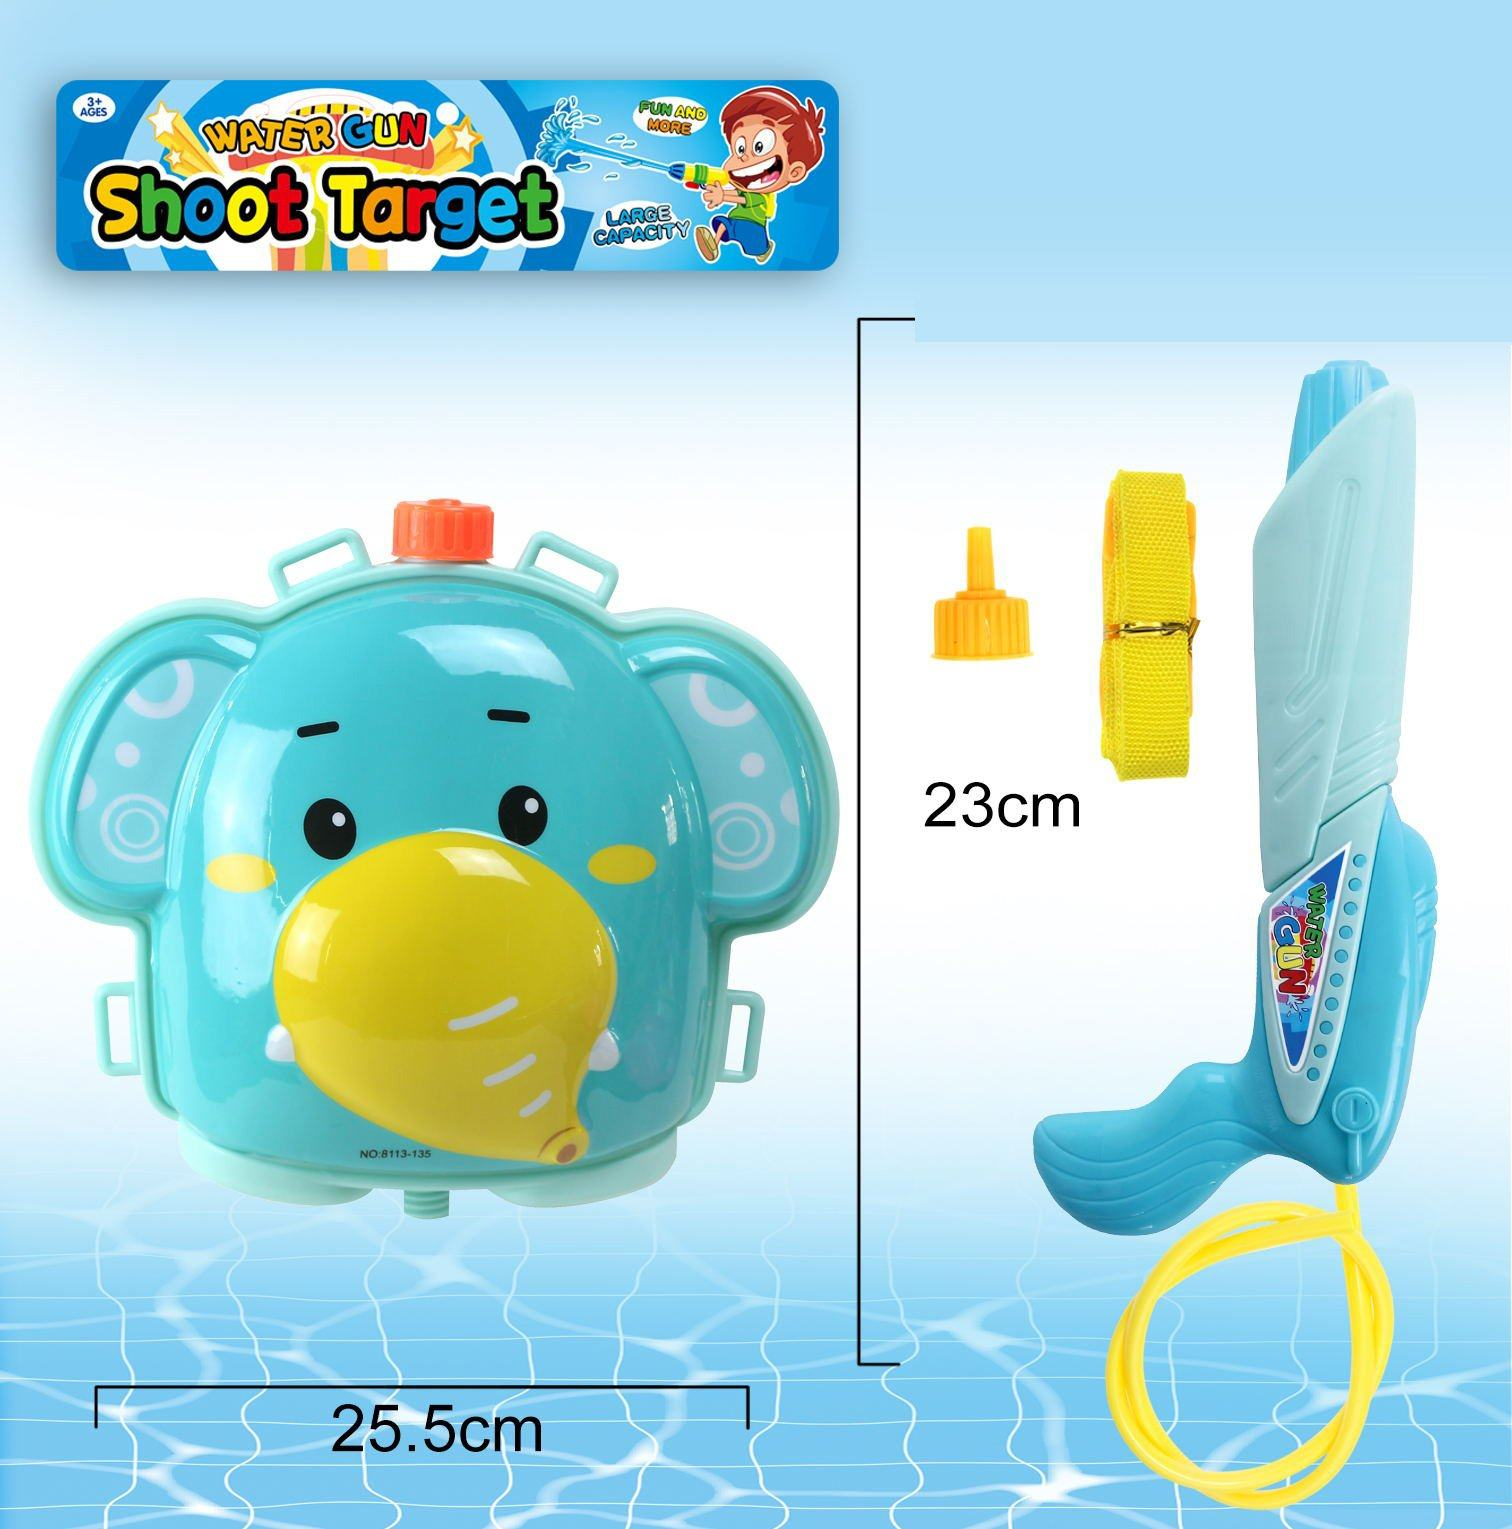 Elephant water gun fun toy with squirting water showing dimensions